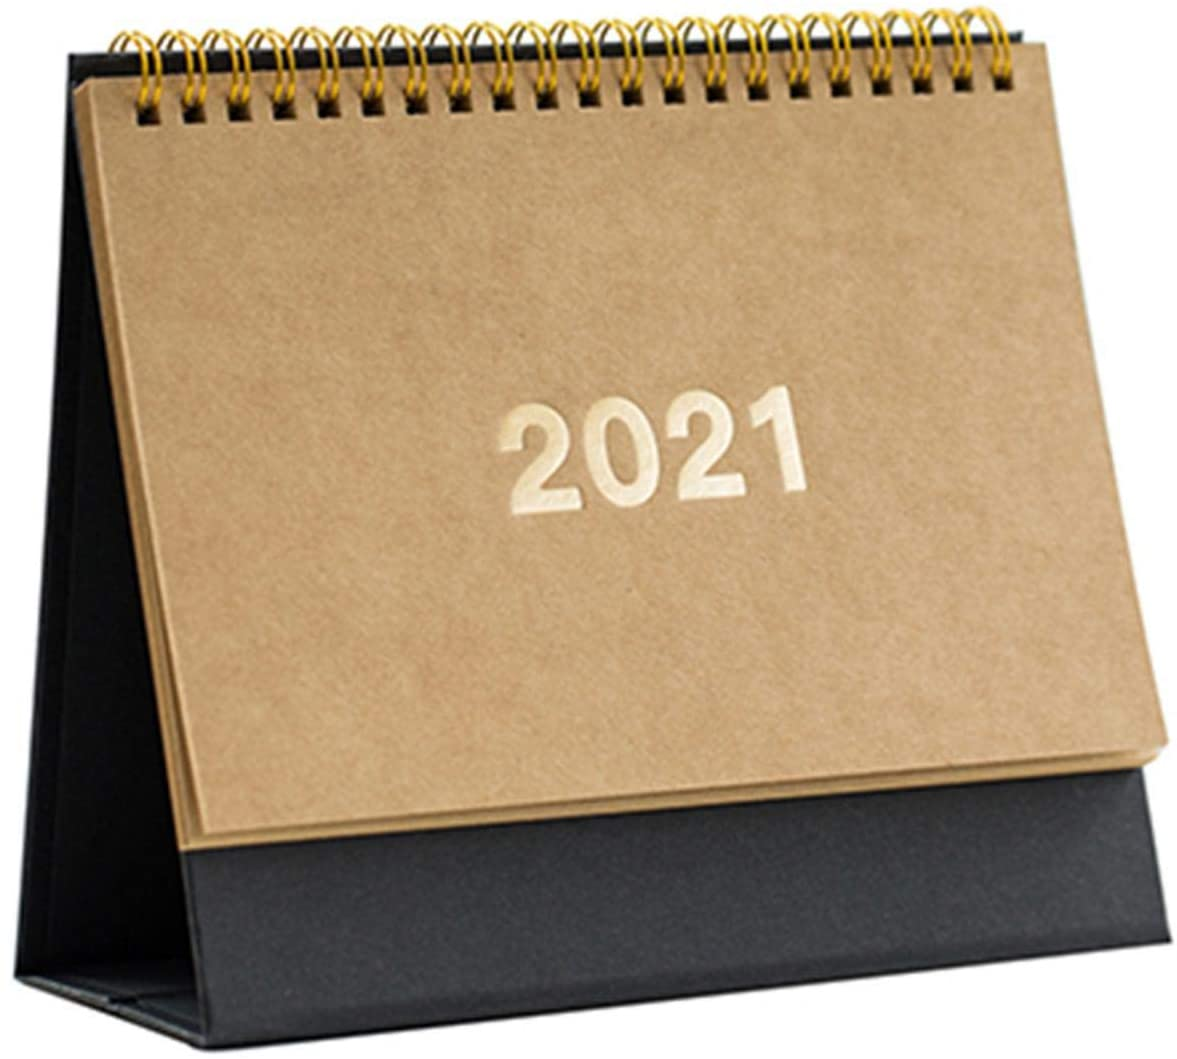 2021 Desk Calendar Month to View, 2019-2021 Cute Desktop Standing Flip Monthly Calendar, Retro Desk Calendar for Use from August 2019 to December 2021